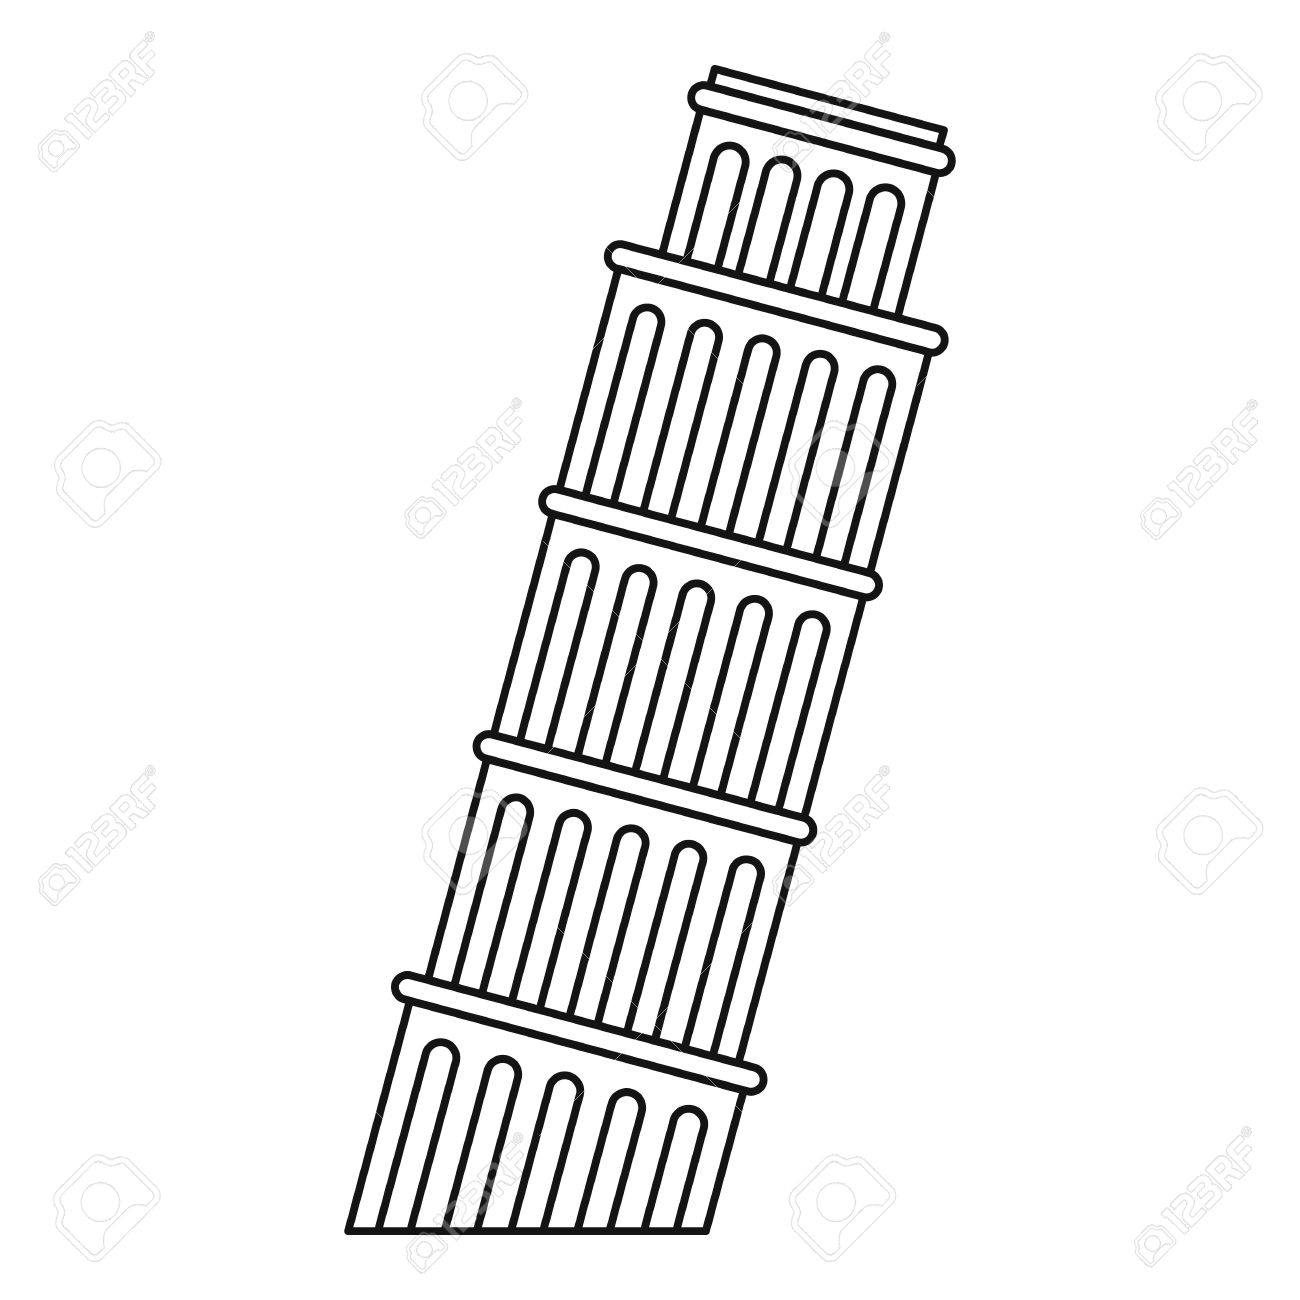 printable pictures of the leaning tower of pisa leaning tower of pisa silhouette clipart free pisa the printable of leaning of tower pictures